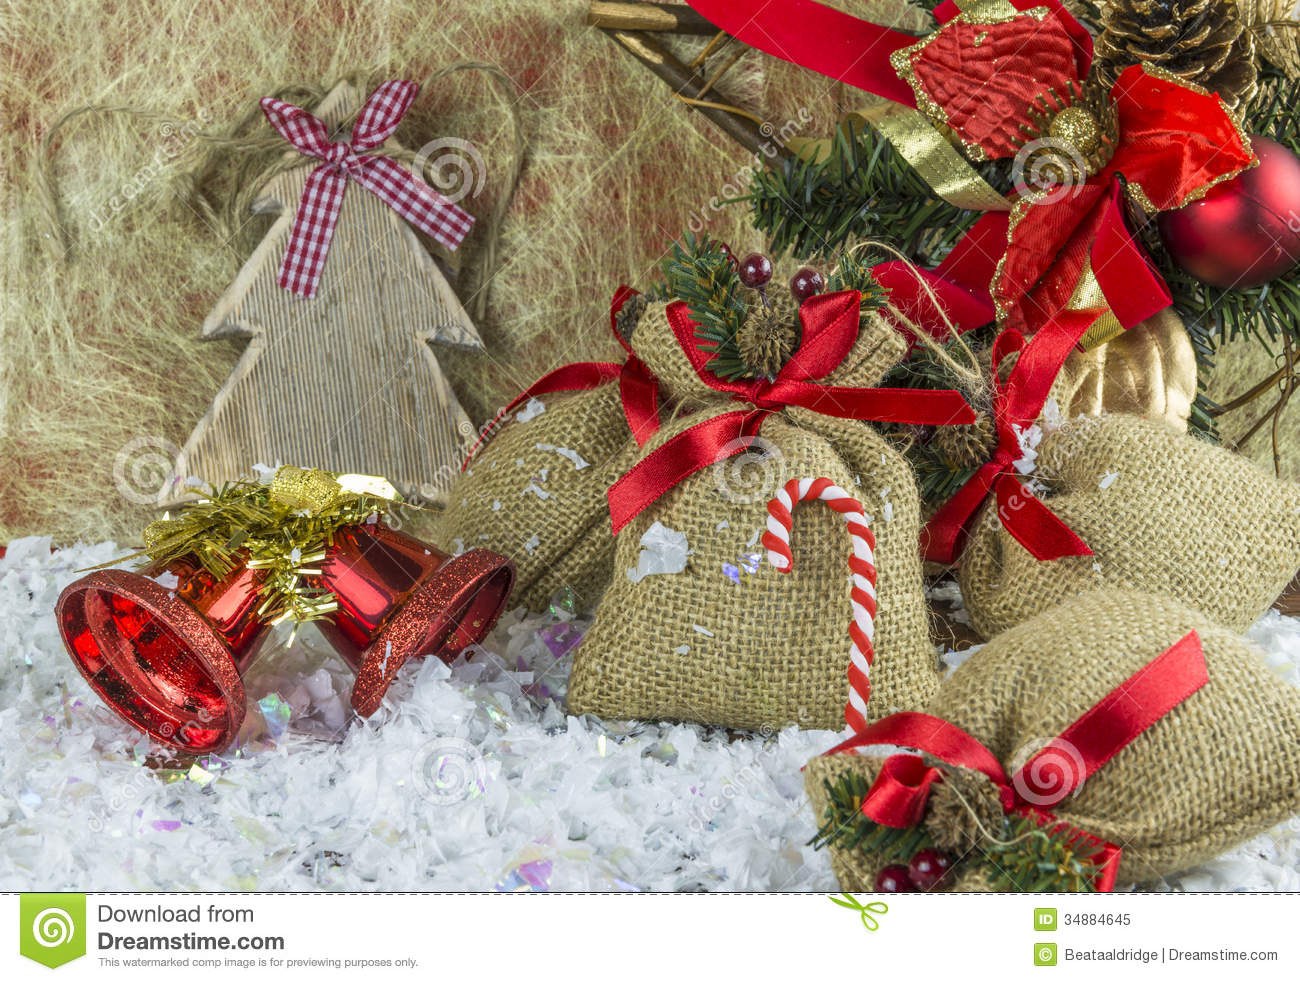 download rustic vintage christmas decorations stock image image of natural christmas 34884645